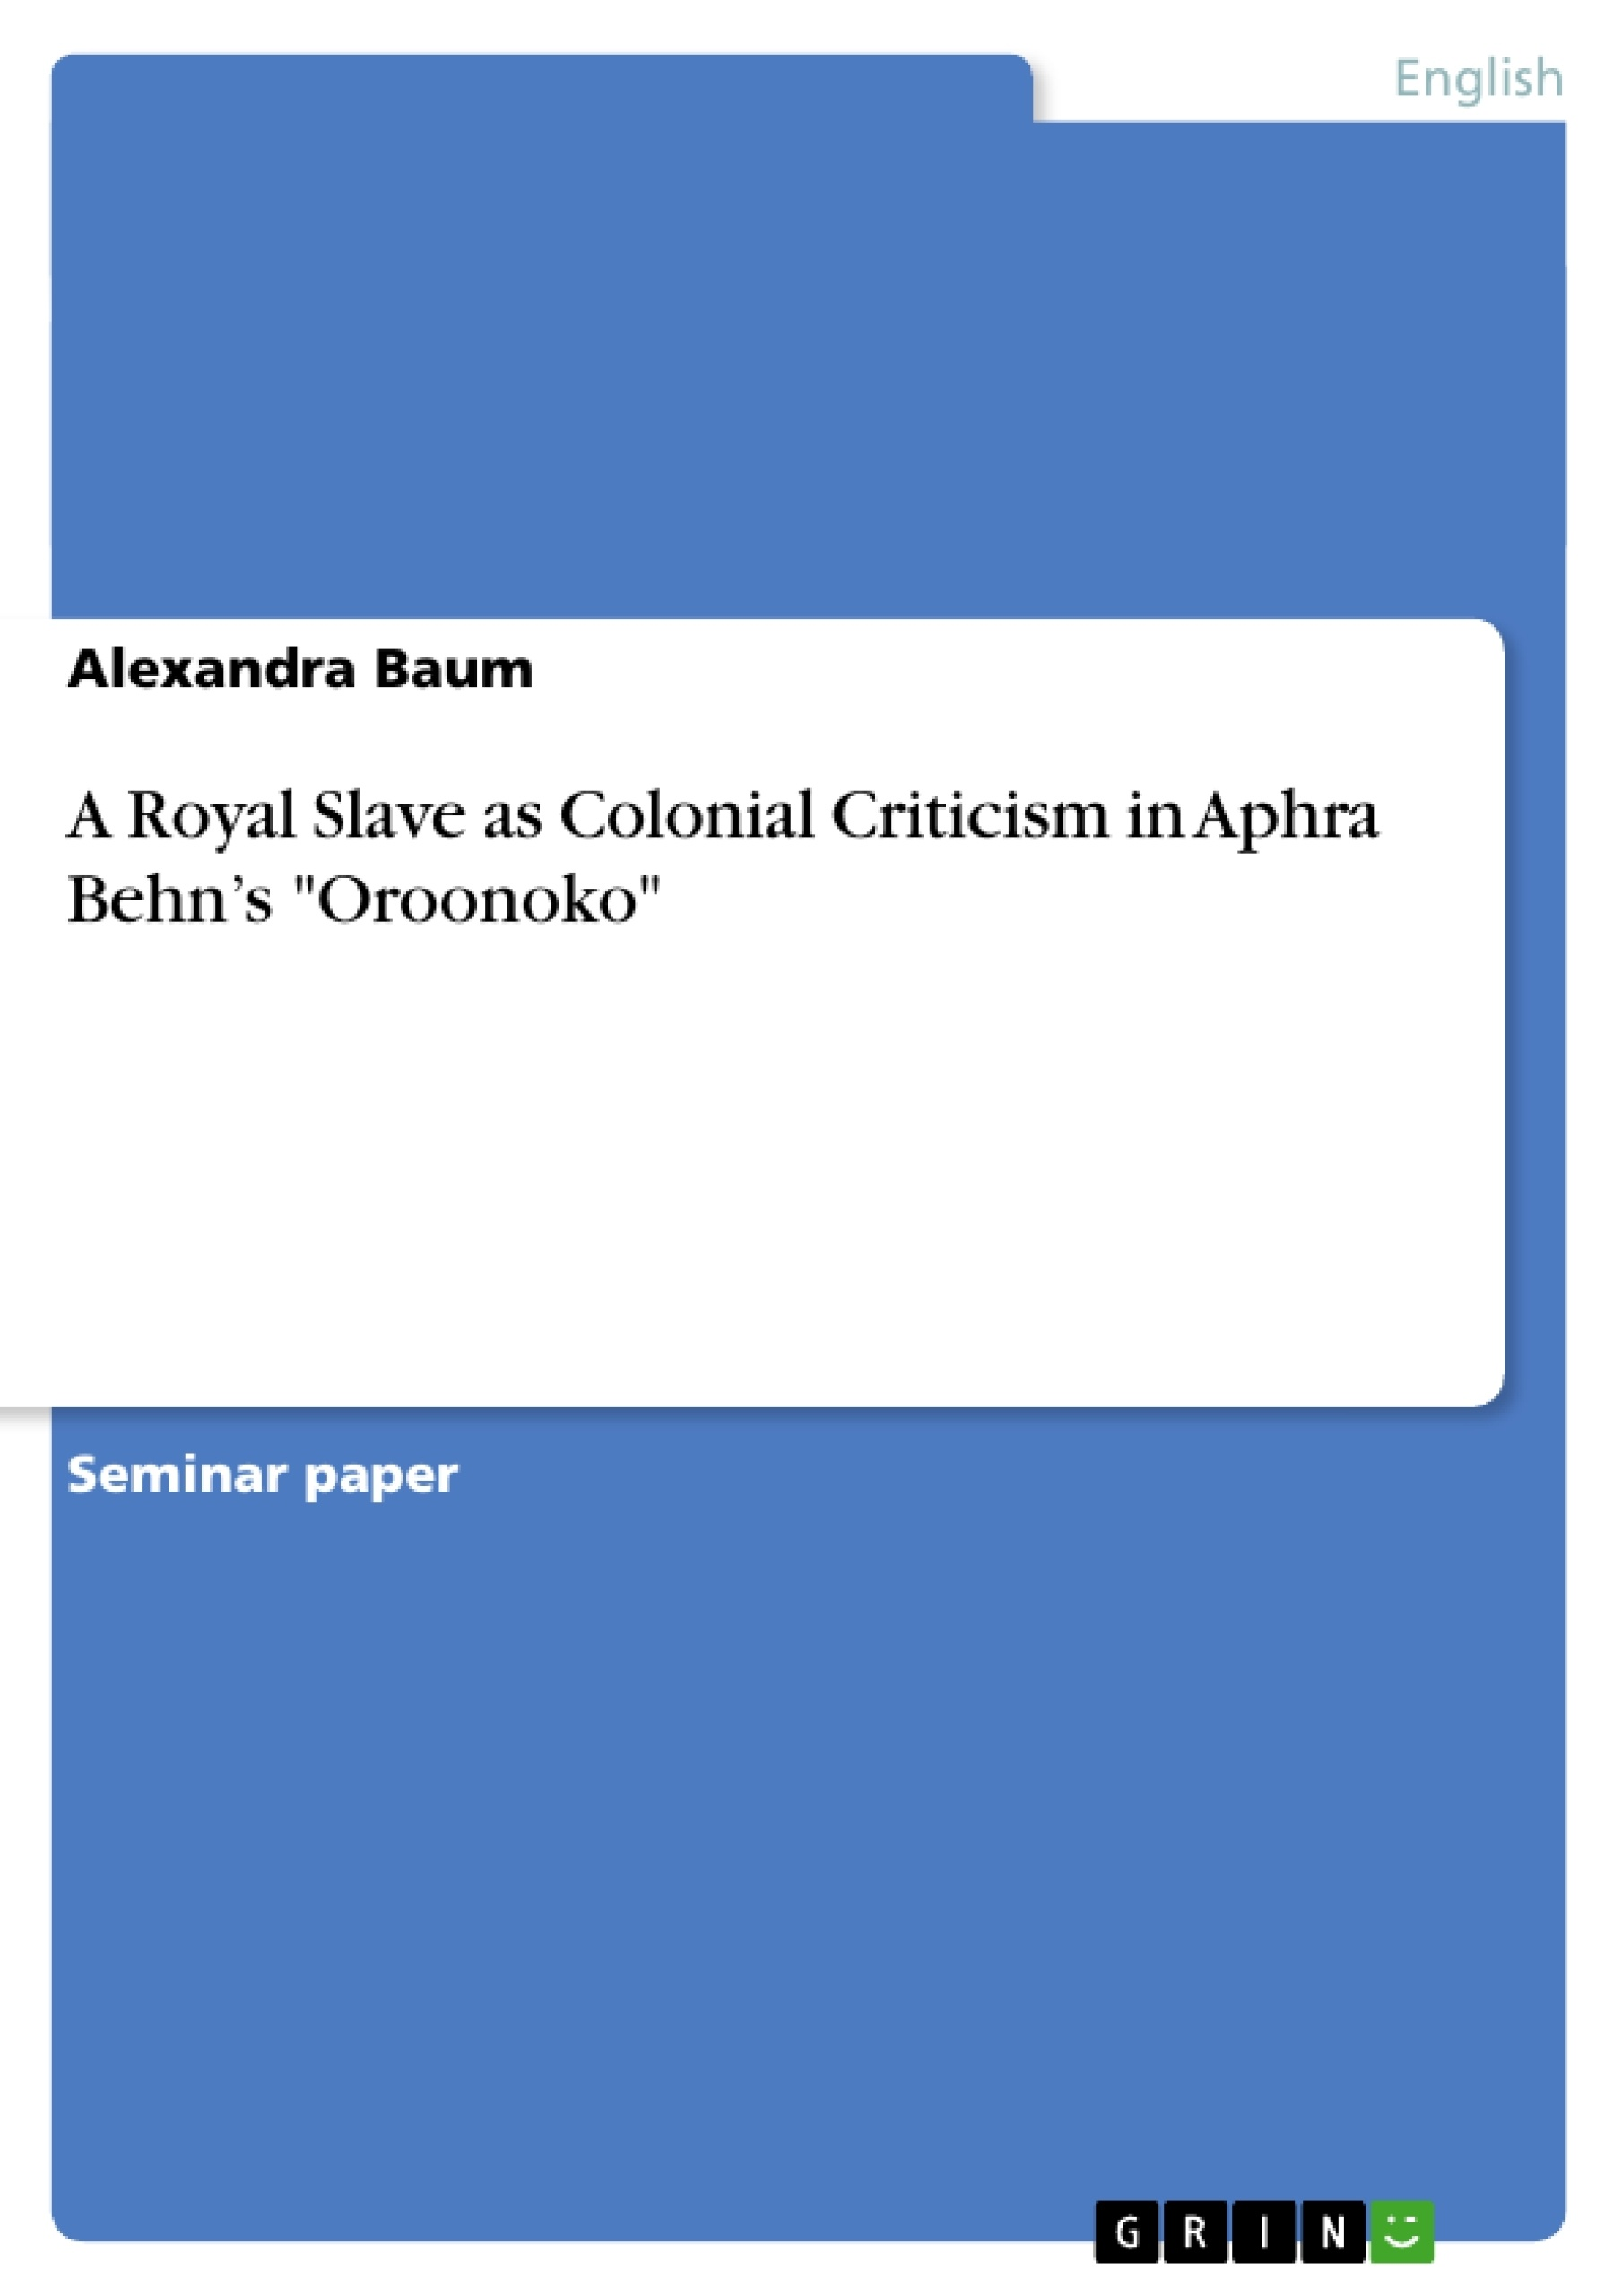 A Royal Slave As Colonial Criticism In Aphra Behns Oroonoko  Upload Your Own Papers Earn Money And Win An Iphone X